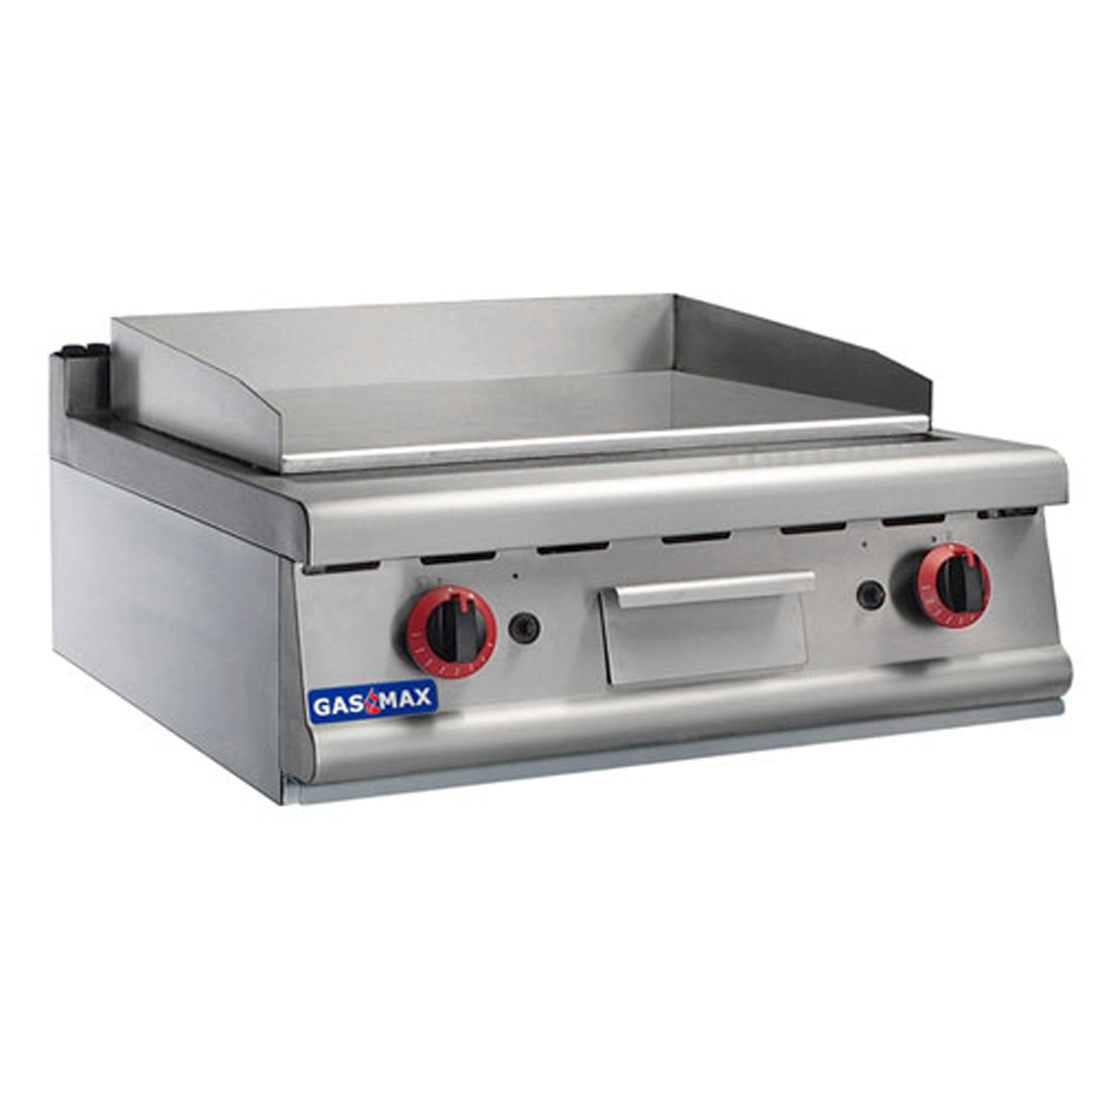 JZH-TRG(P) - Griddle top